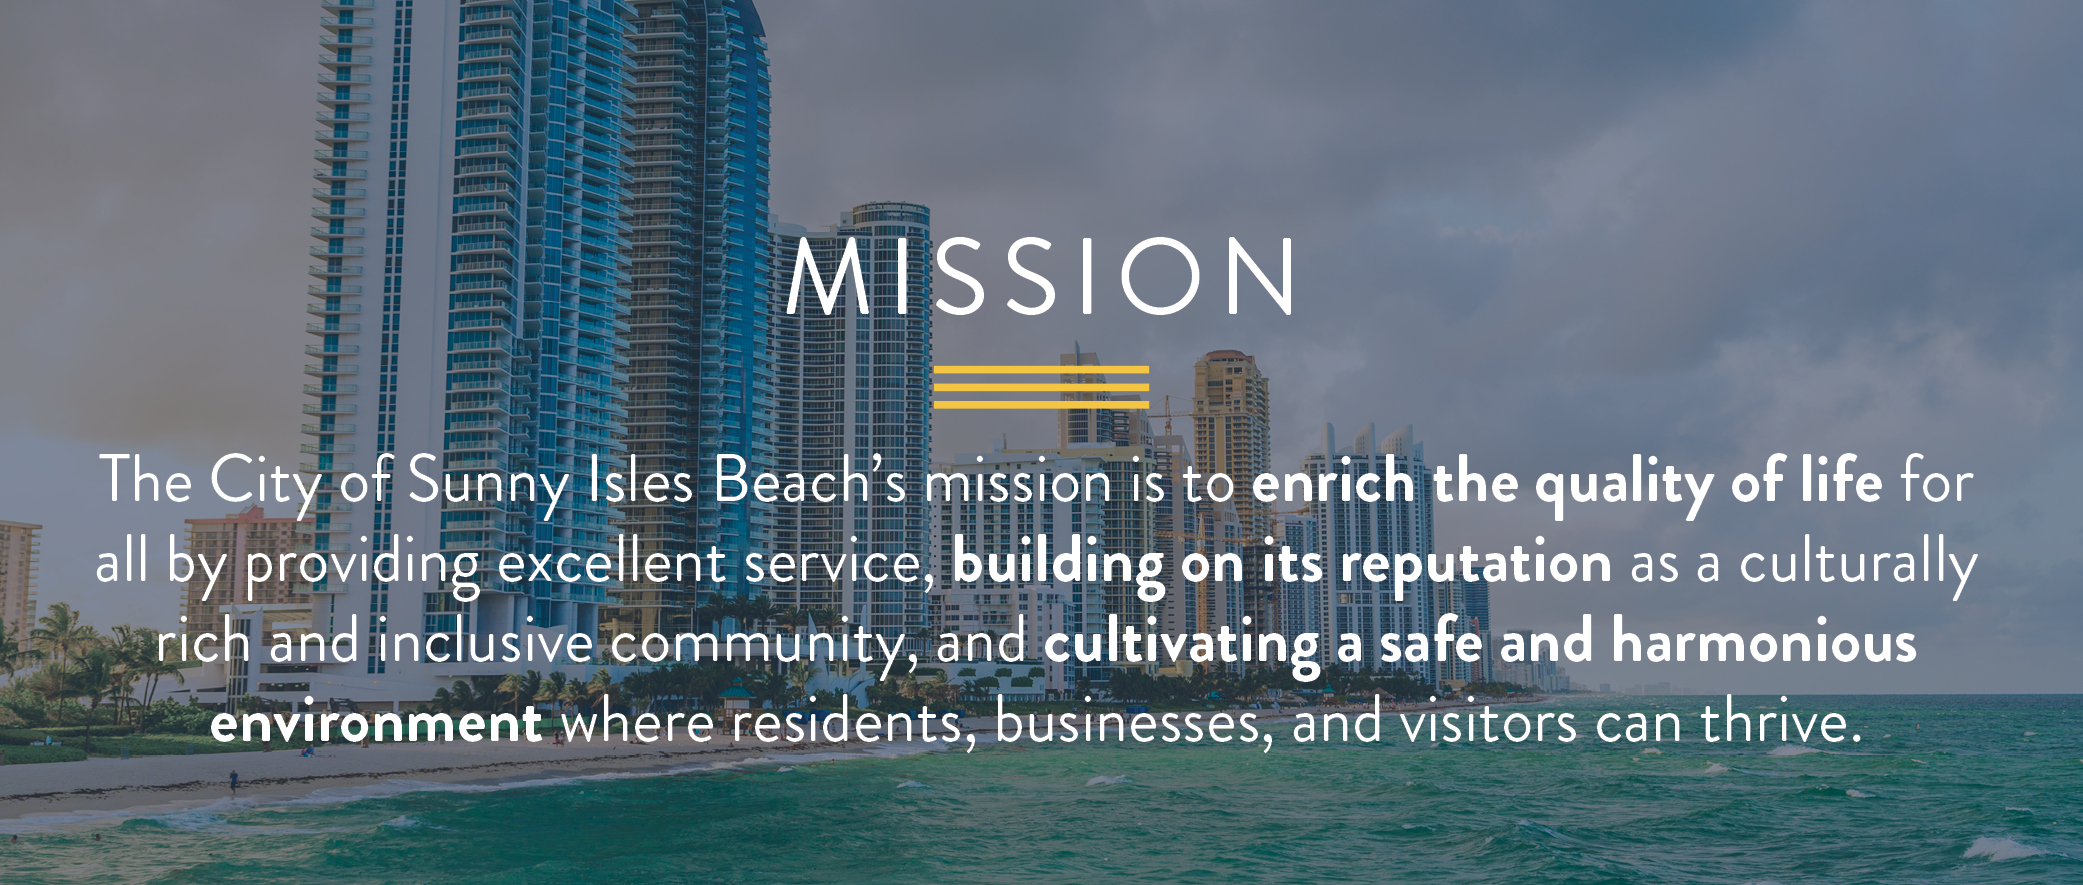 The City of Sunny Isles Beach's mission is to enrich the quality of life for all by providing excellent service, building on its reputation as a culturally rich and inclusive community, and cultivating a safe and harmonious environment where residents, businesses, and visitors can thrive.